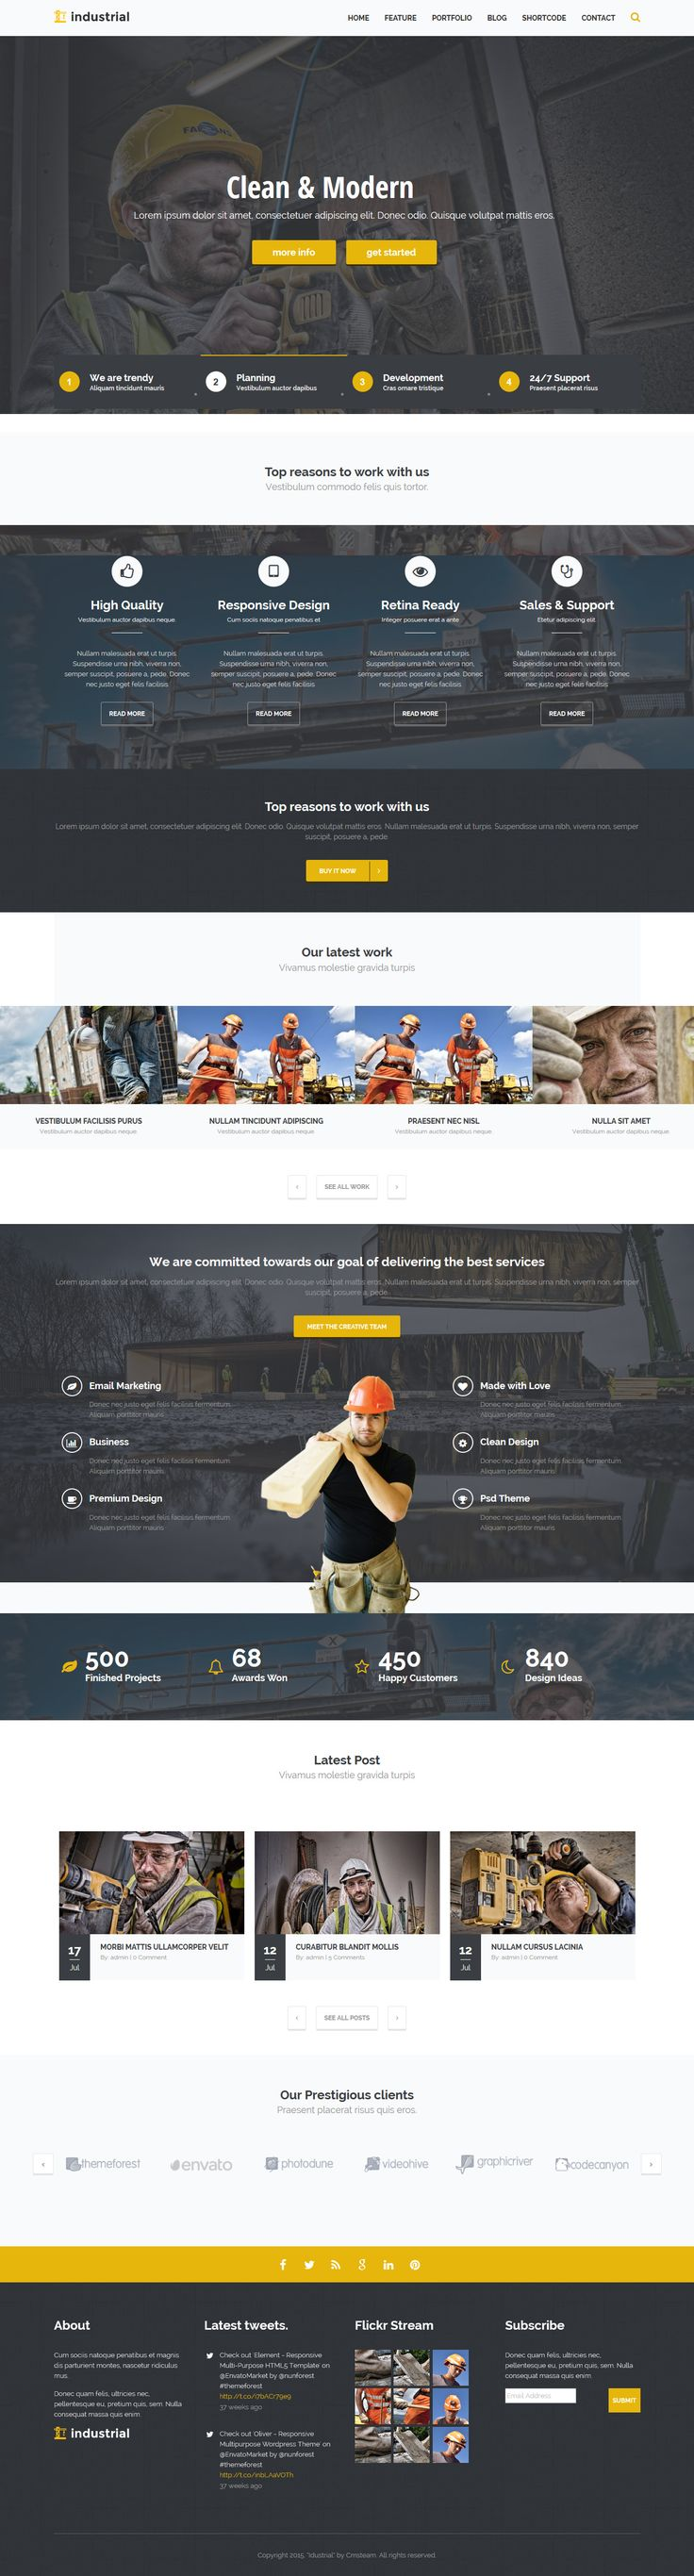 Industrial - Construction & Industry WordPress Theme #webdesign #website Download: http://themeforest.net/item/industrial-construction-industry-wp-theme/12168563?ref=ksioks